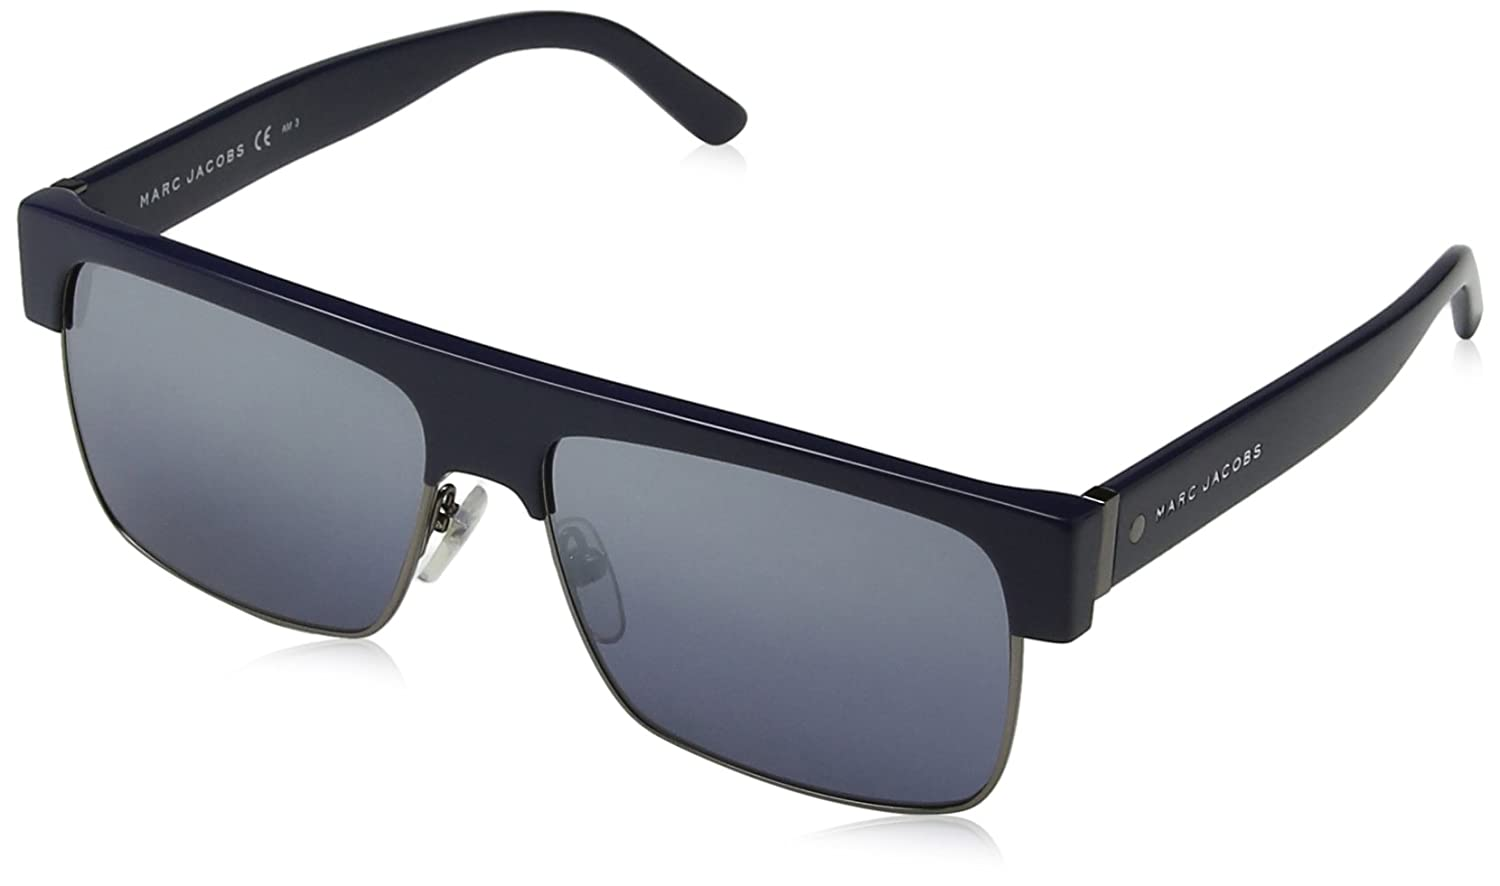 Marc Jacobs Unisex Adults 56/S J3 XJ5 57 Sunglasses, Blue (Bluette Dkruth/Grey Slvsp Degr) MARC 56/S J3